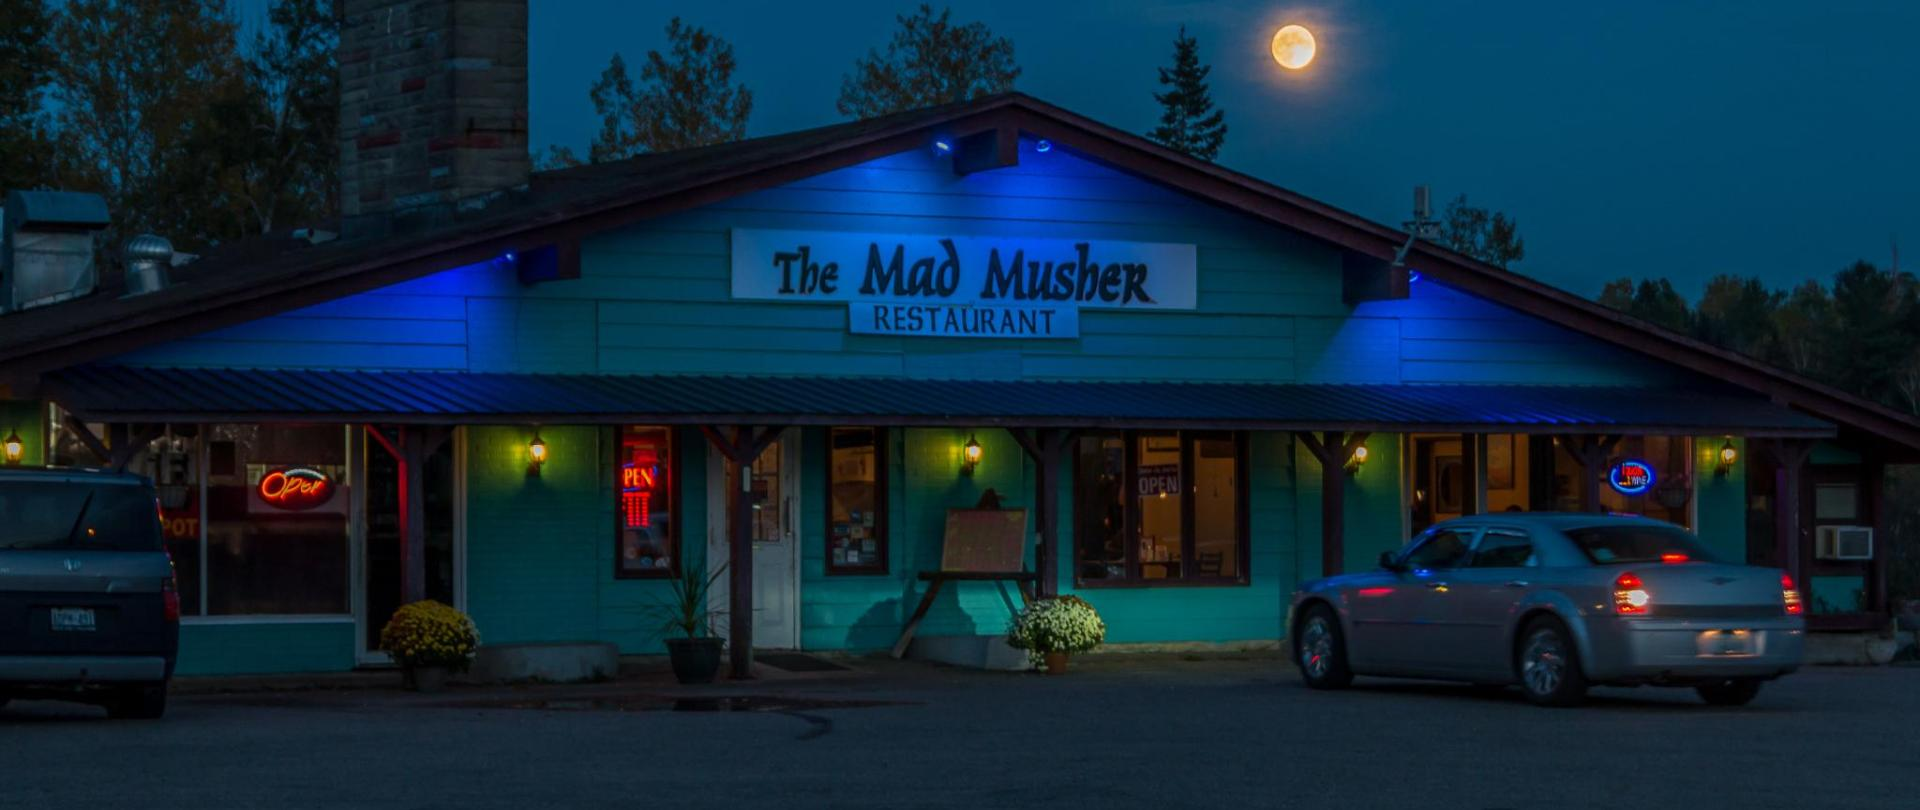 The Mad Musher - Hostel